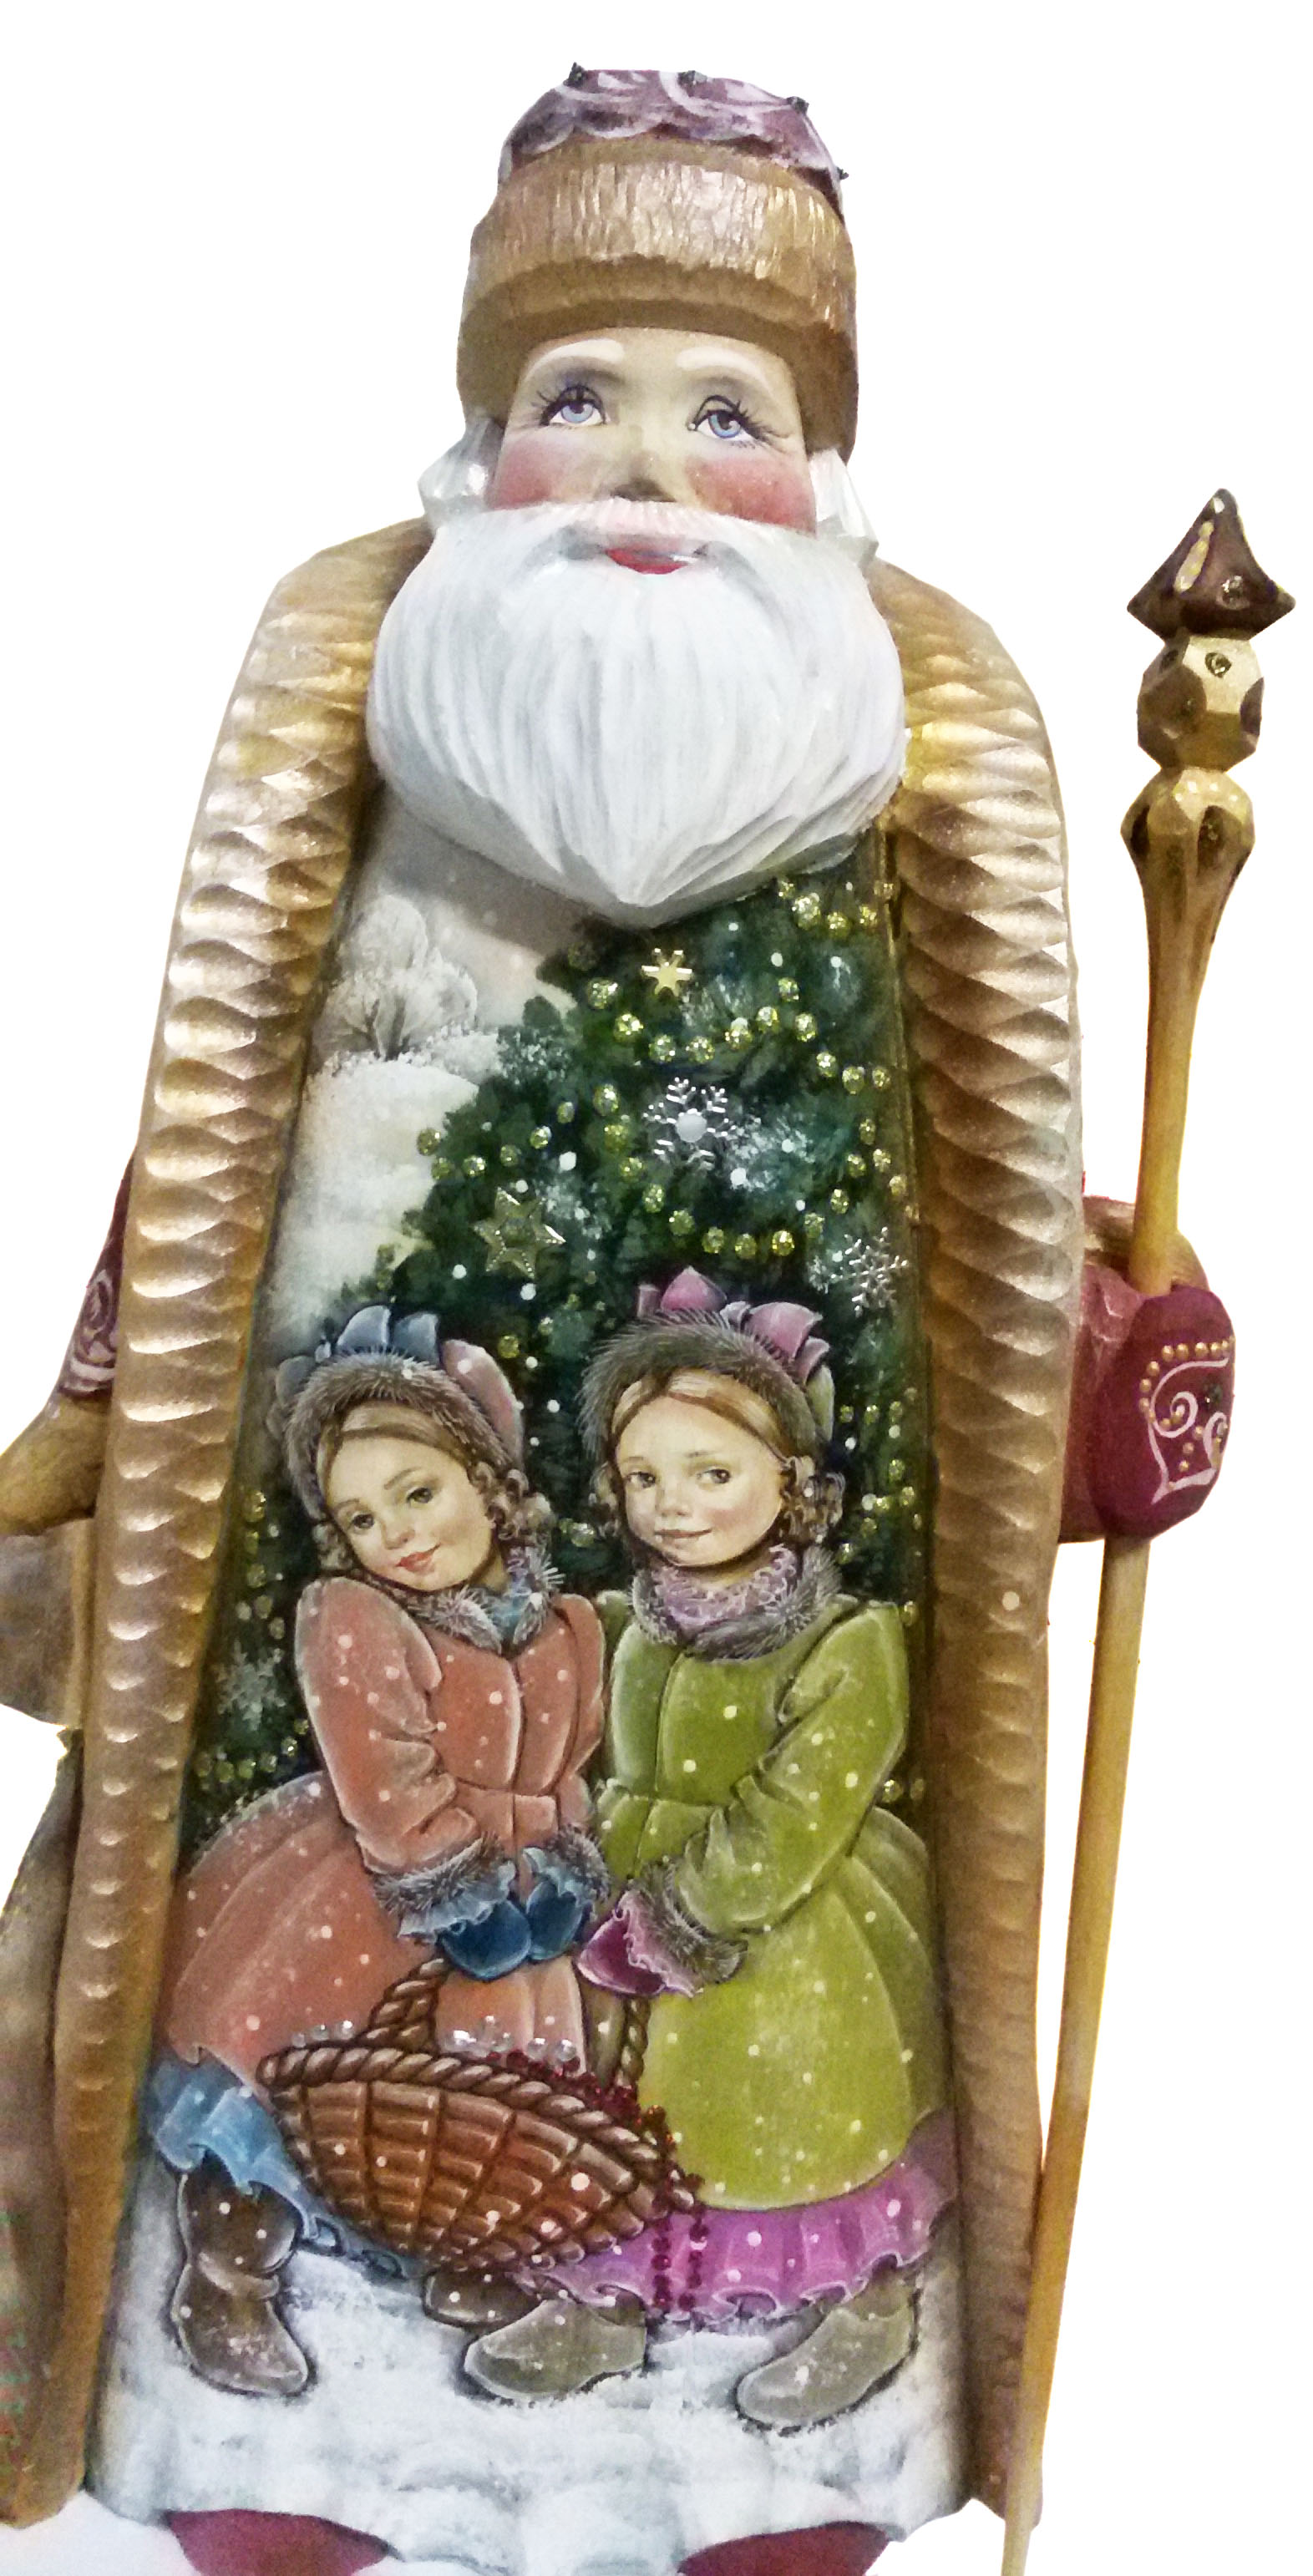 CK_ish65003 Traditionally hand carved of wood from linden tree and hand painted Santa Claus (35-36 cm)